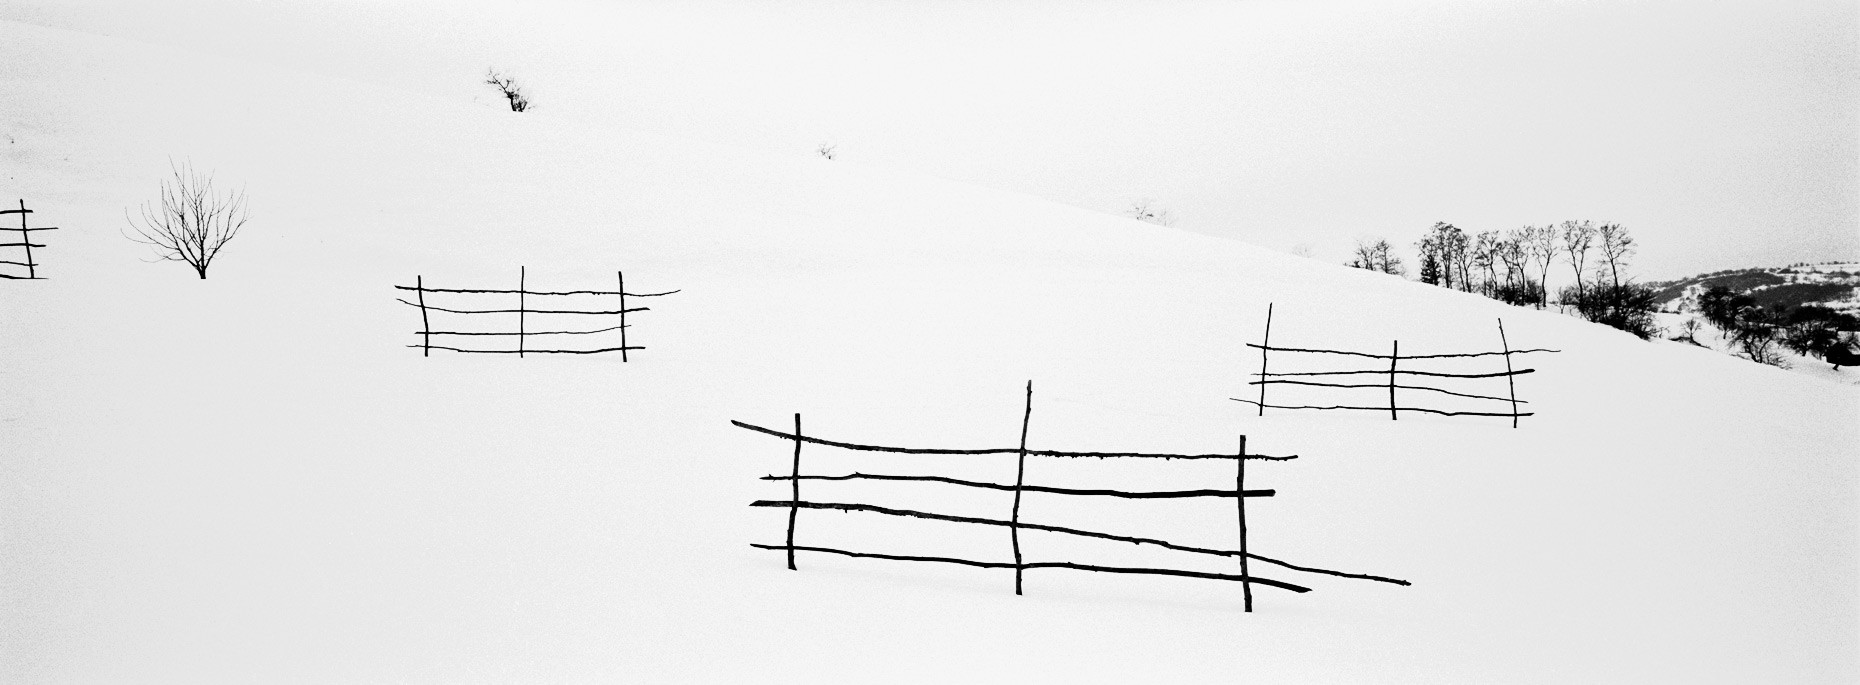 010_Ellicson_2003_Winter_Hay_Rack_Panoramic